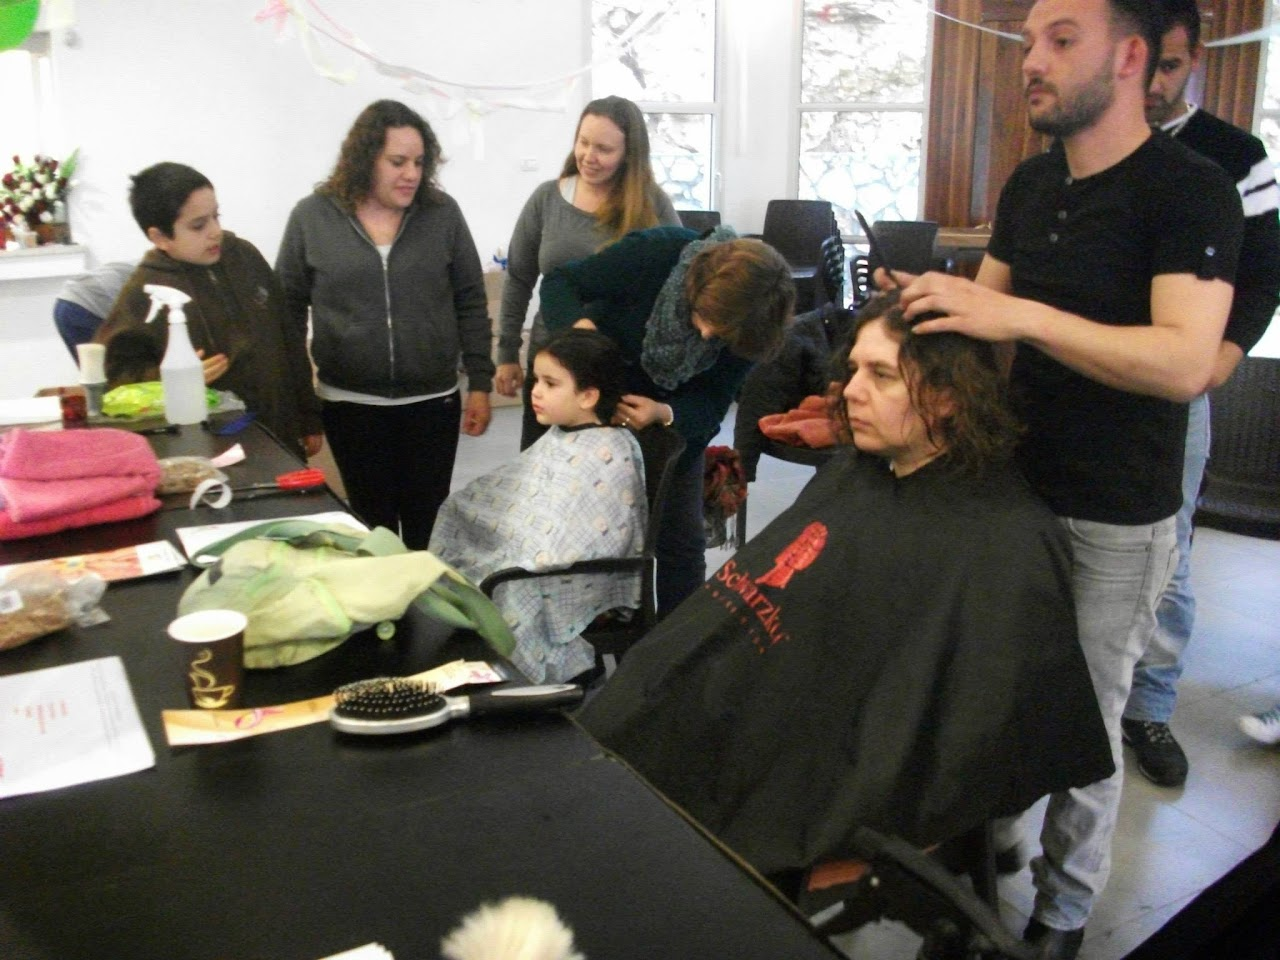 Donating hair for cancer patients 2014  - 10001137_539676346148663_24489410_o.jpg